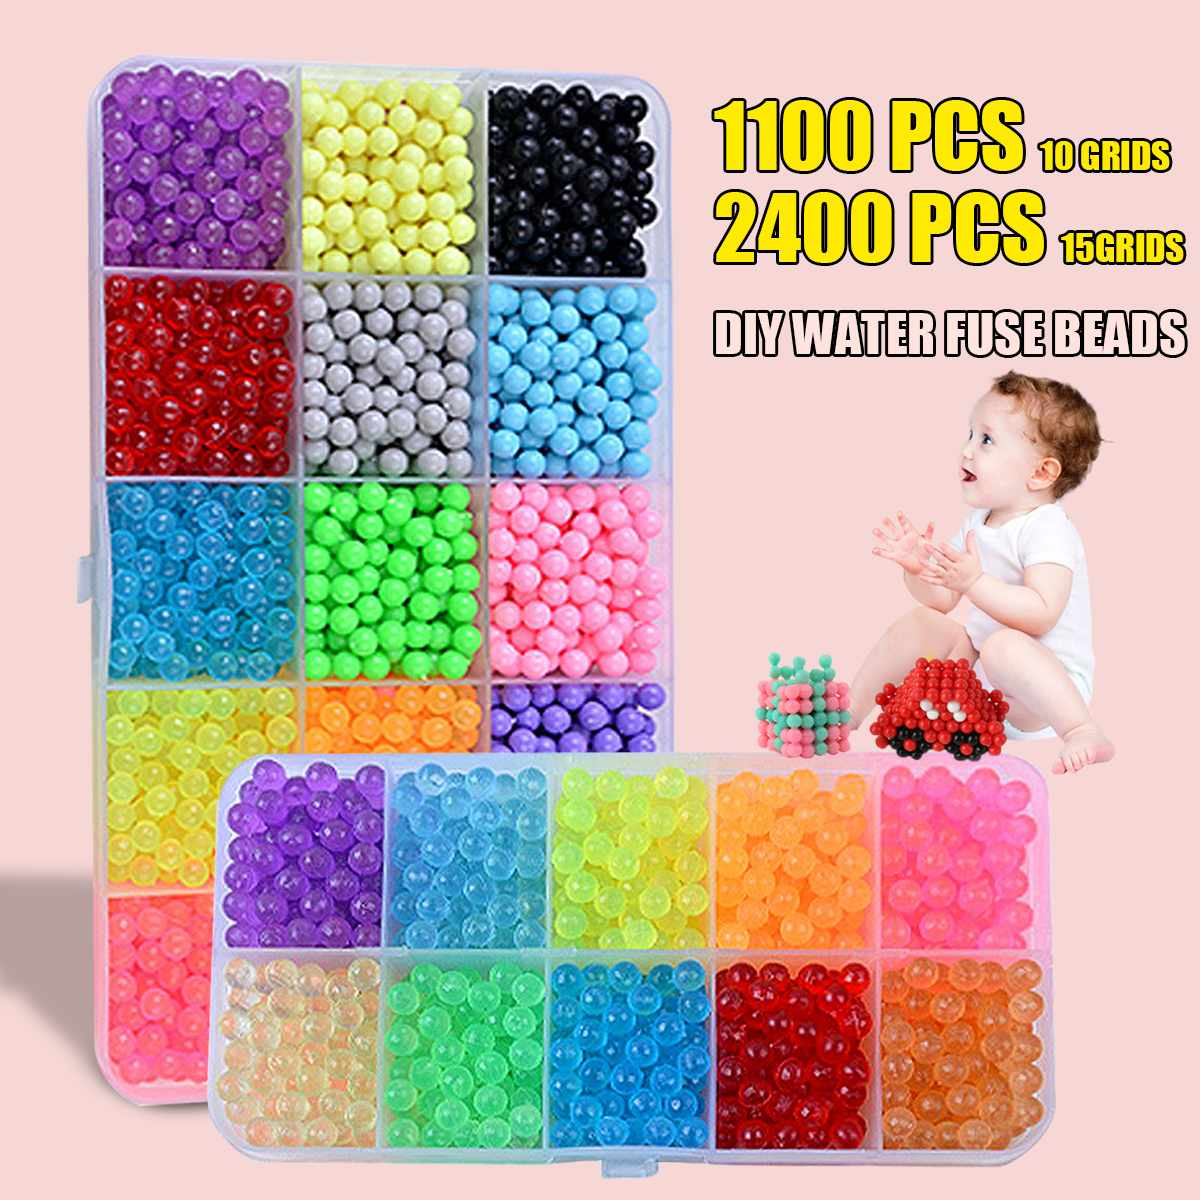 2400 Pcs DIY Magic Beads Animal Molds Hand Making 3D Puzzle Kids Educational Beads Toys For Children Spell Replenish With Box